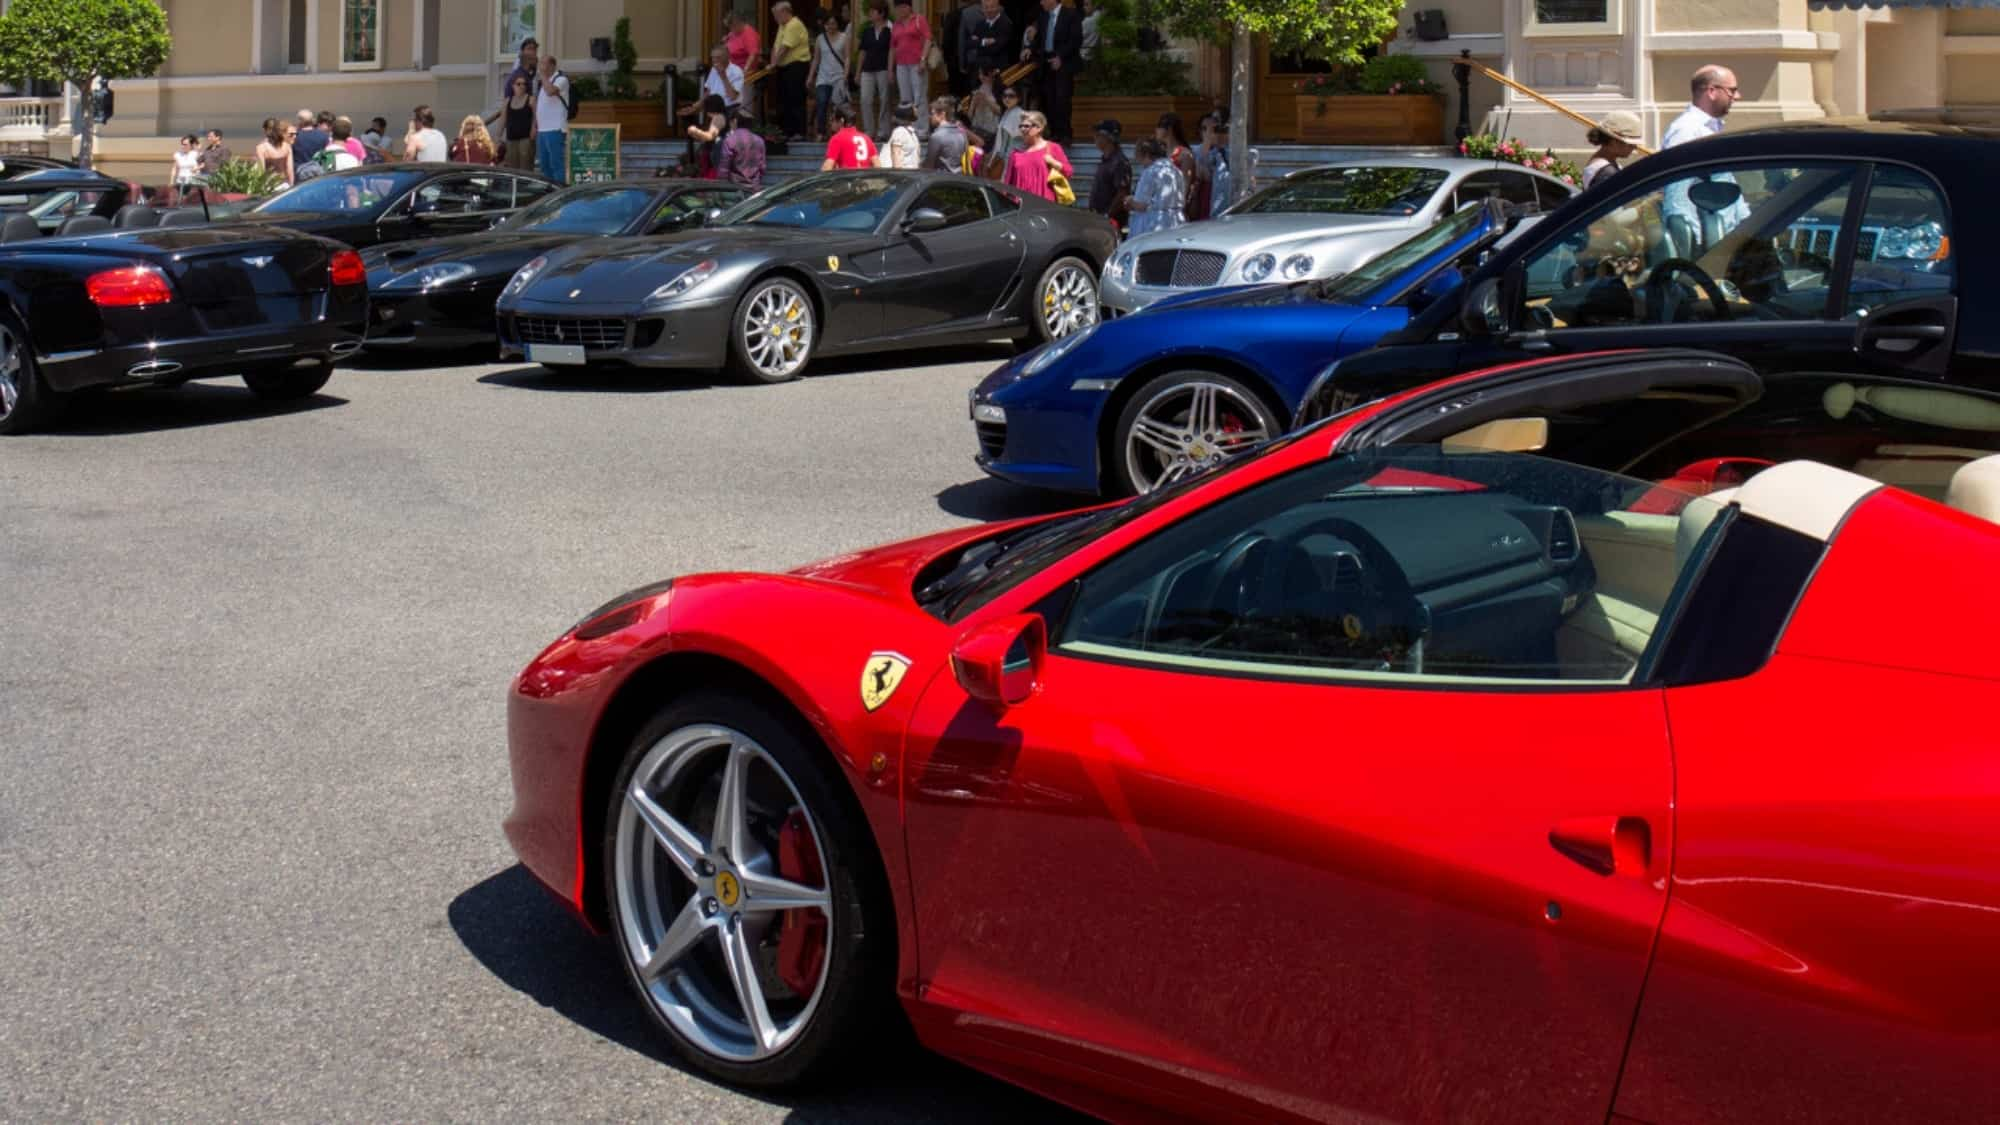 Expensive cars including Ferrari, Rolls Royce, and Bentley on display to the public